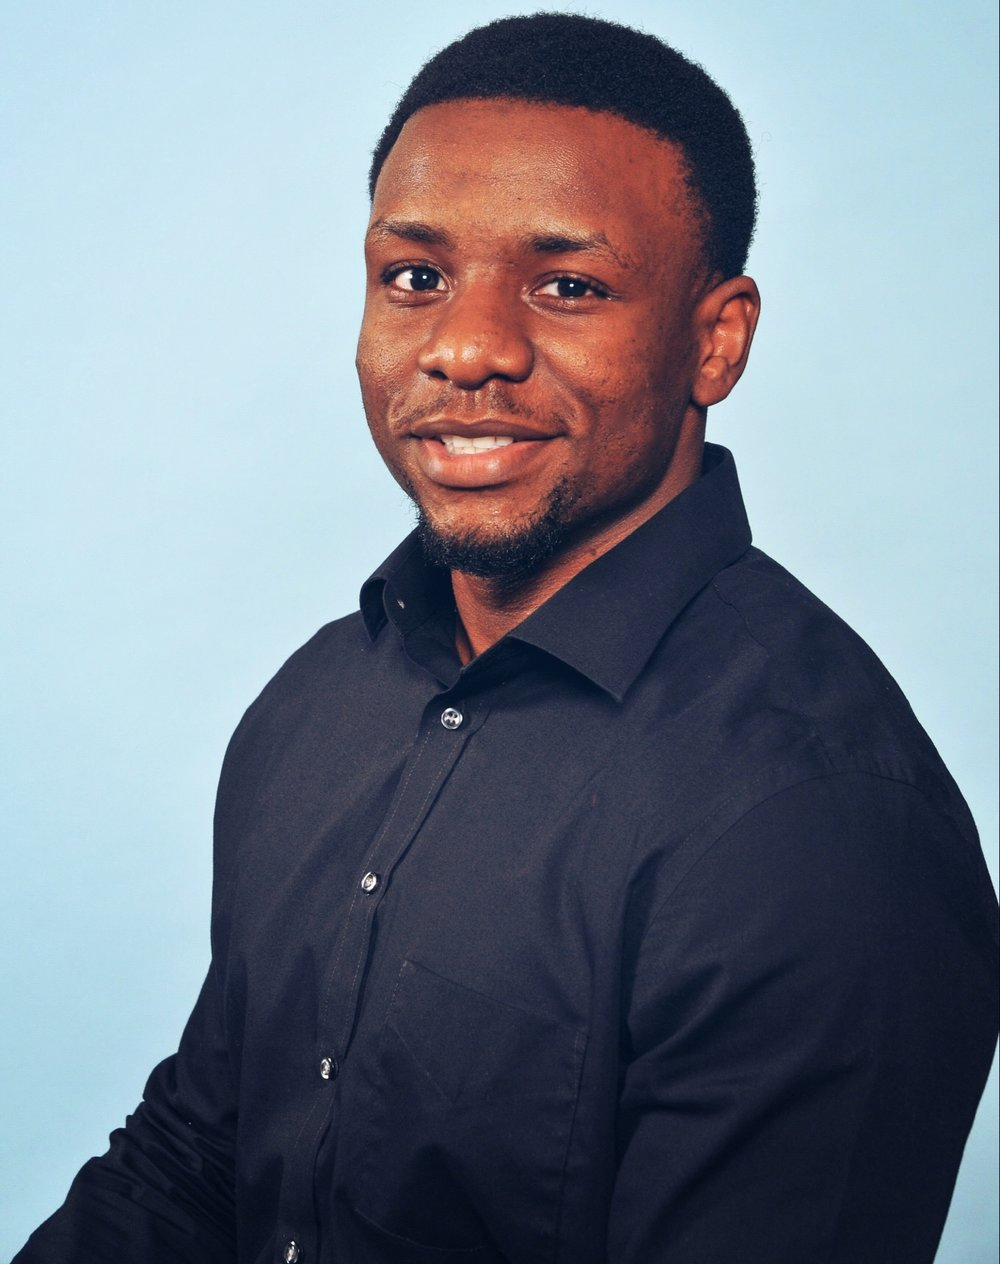 Yves Batoba is the Assistant Director of Player Development for the Miami Dolphins. Photo courtesy of Yves Batoba.